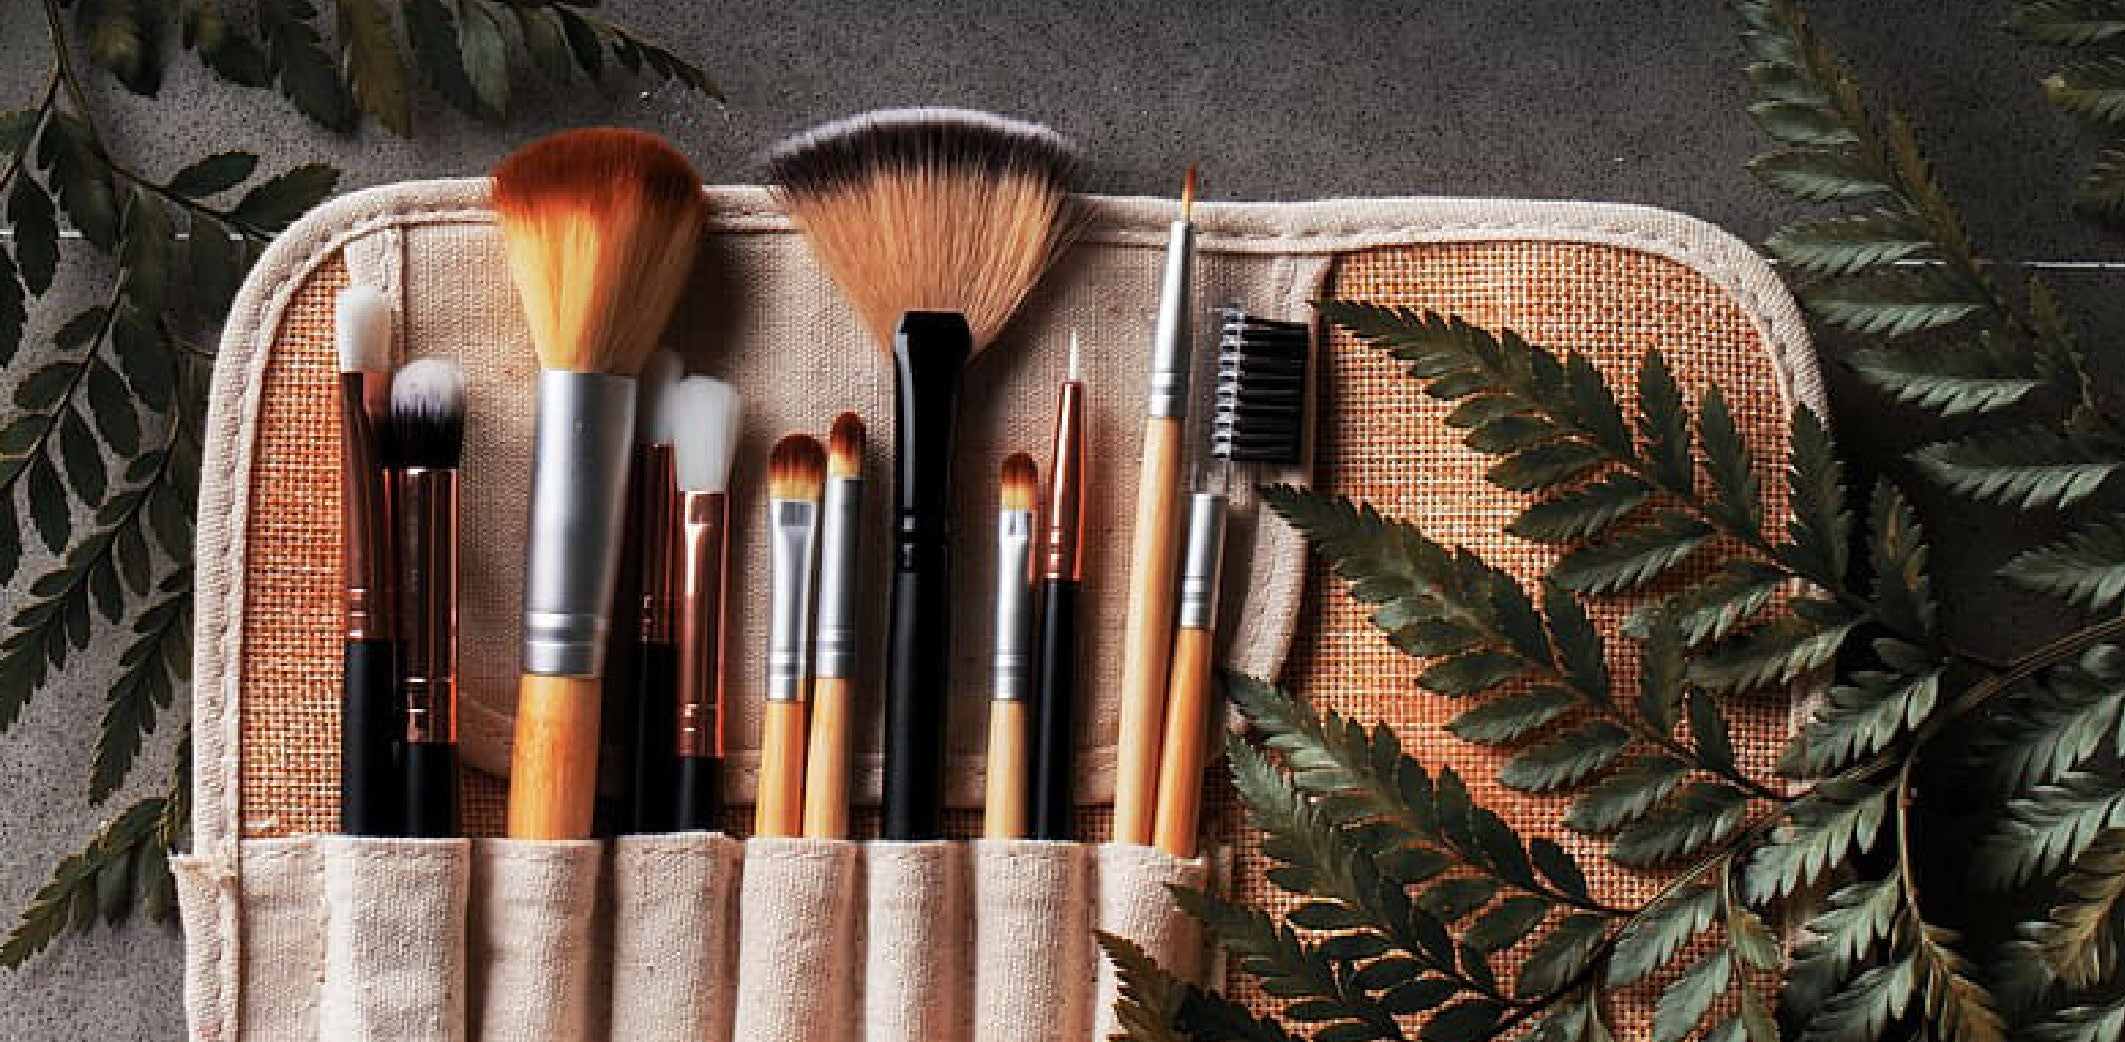 Green Beauty - Organic make-up, vegan cruelty free and toxin free beauty